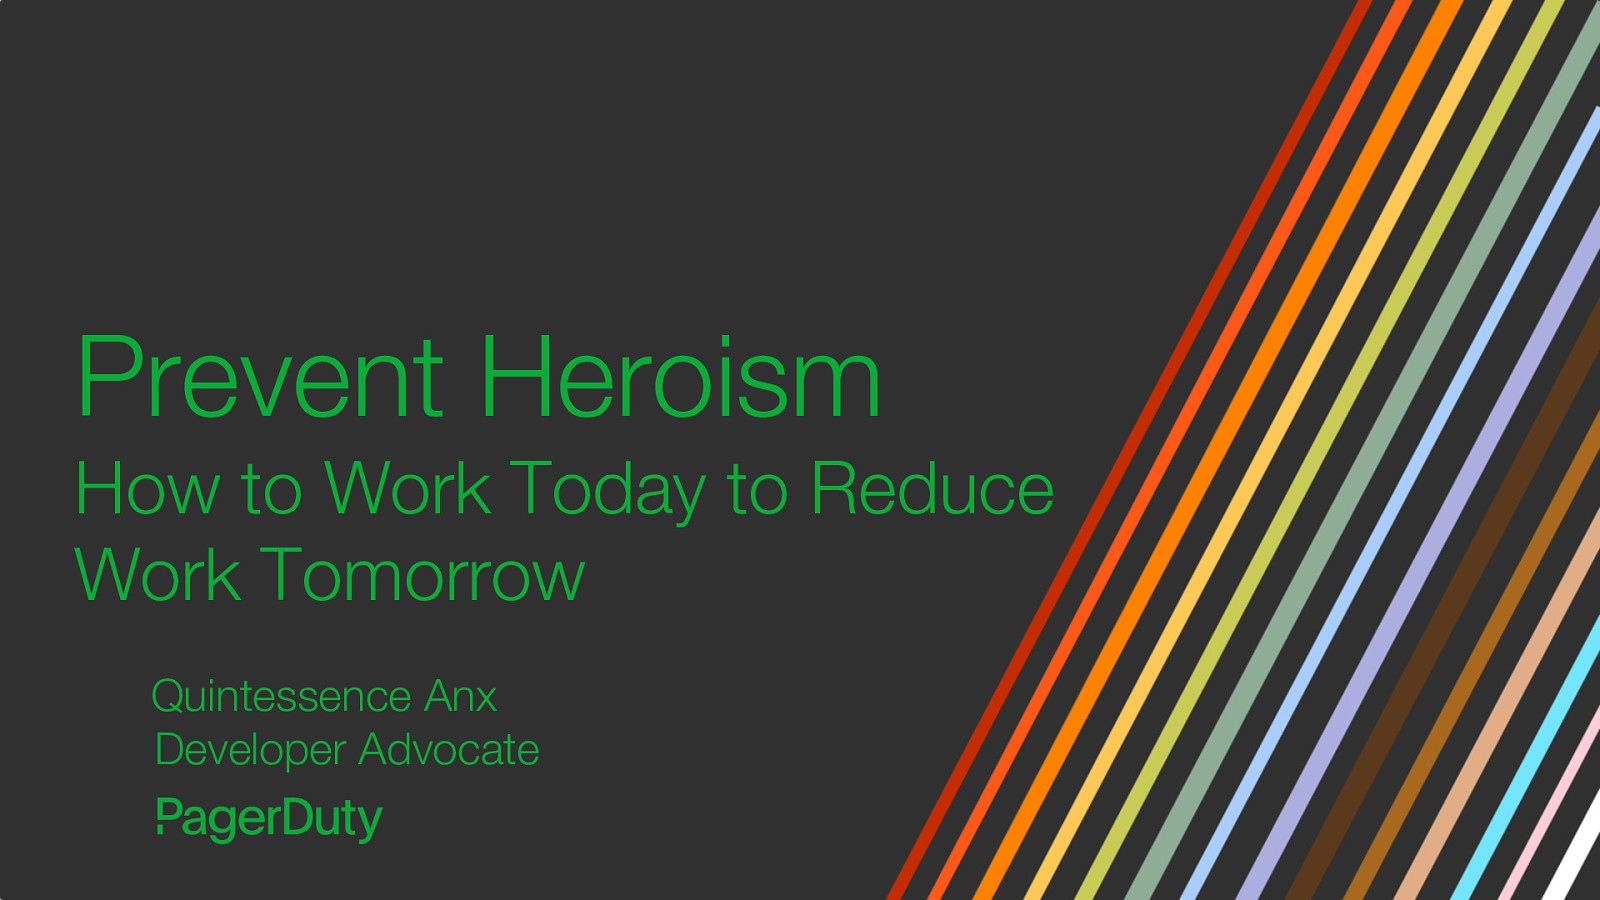 Prevent Heroism: How to Work Today to Reduce Work Tomorrow by Quintessence Anx